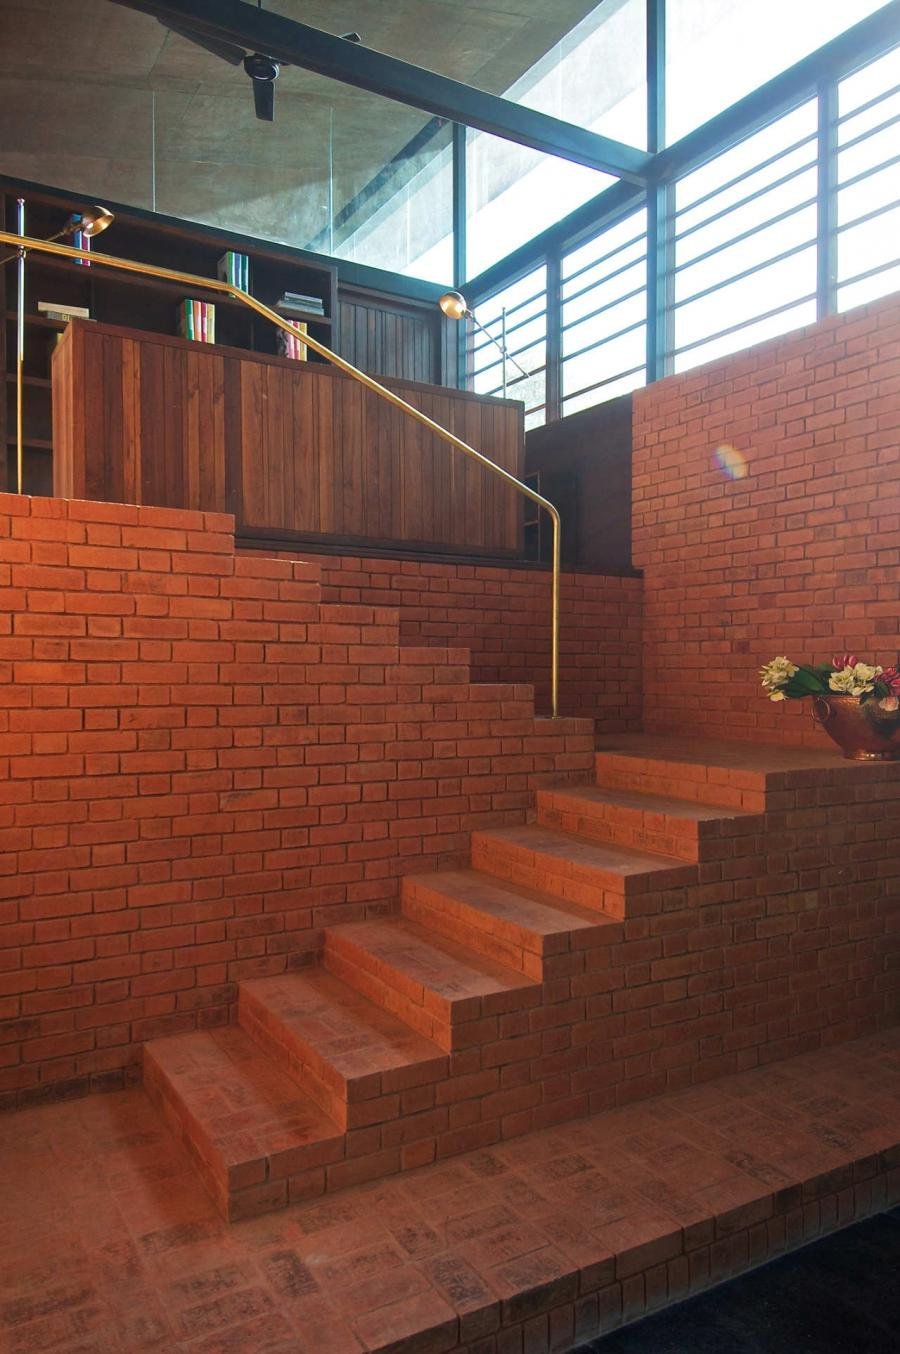 walls and fences as a design element: brick fence designs